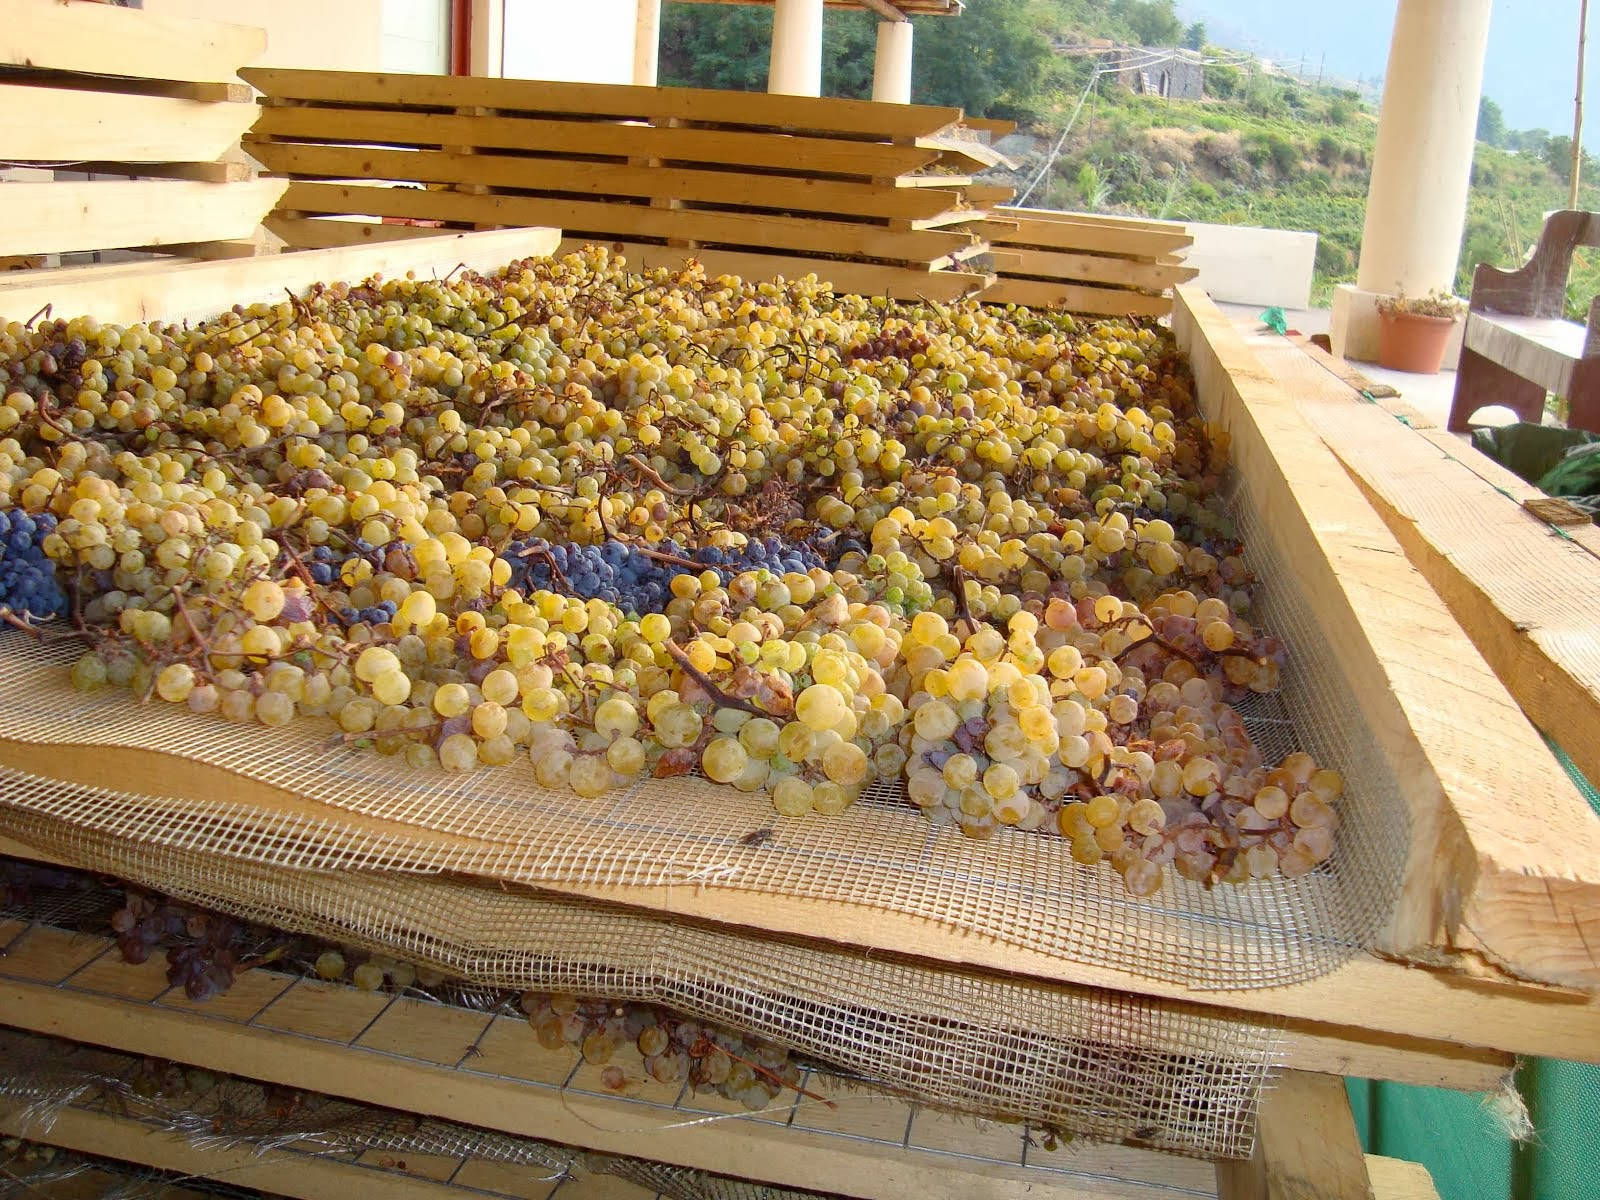 Malvasia on the drying racks